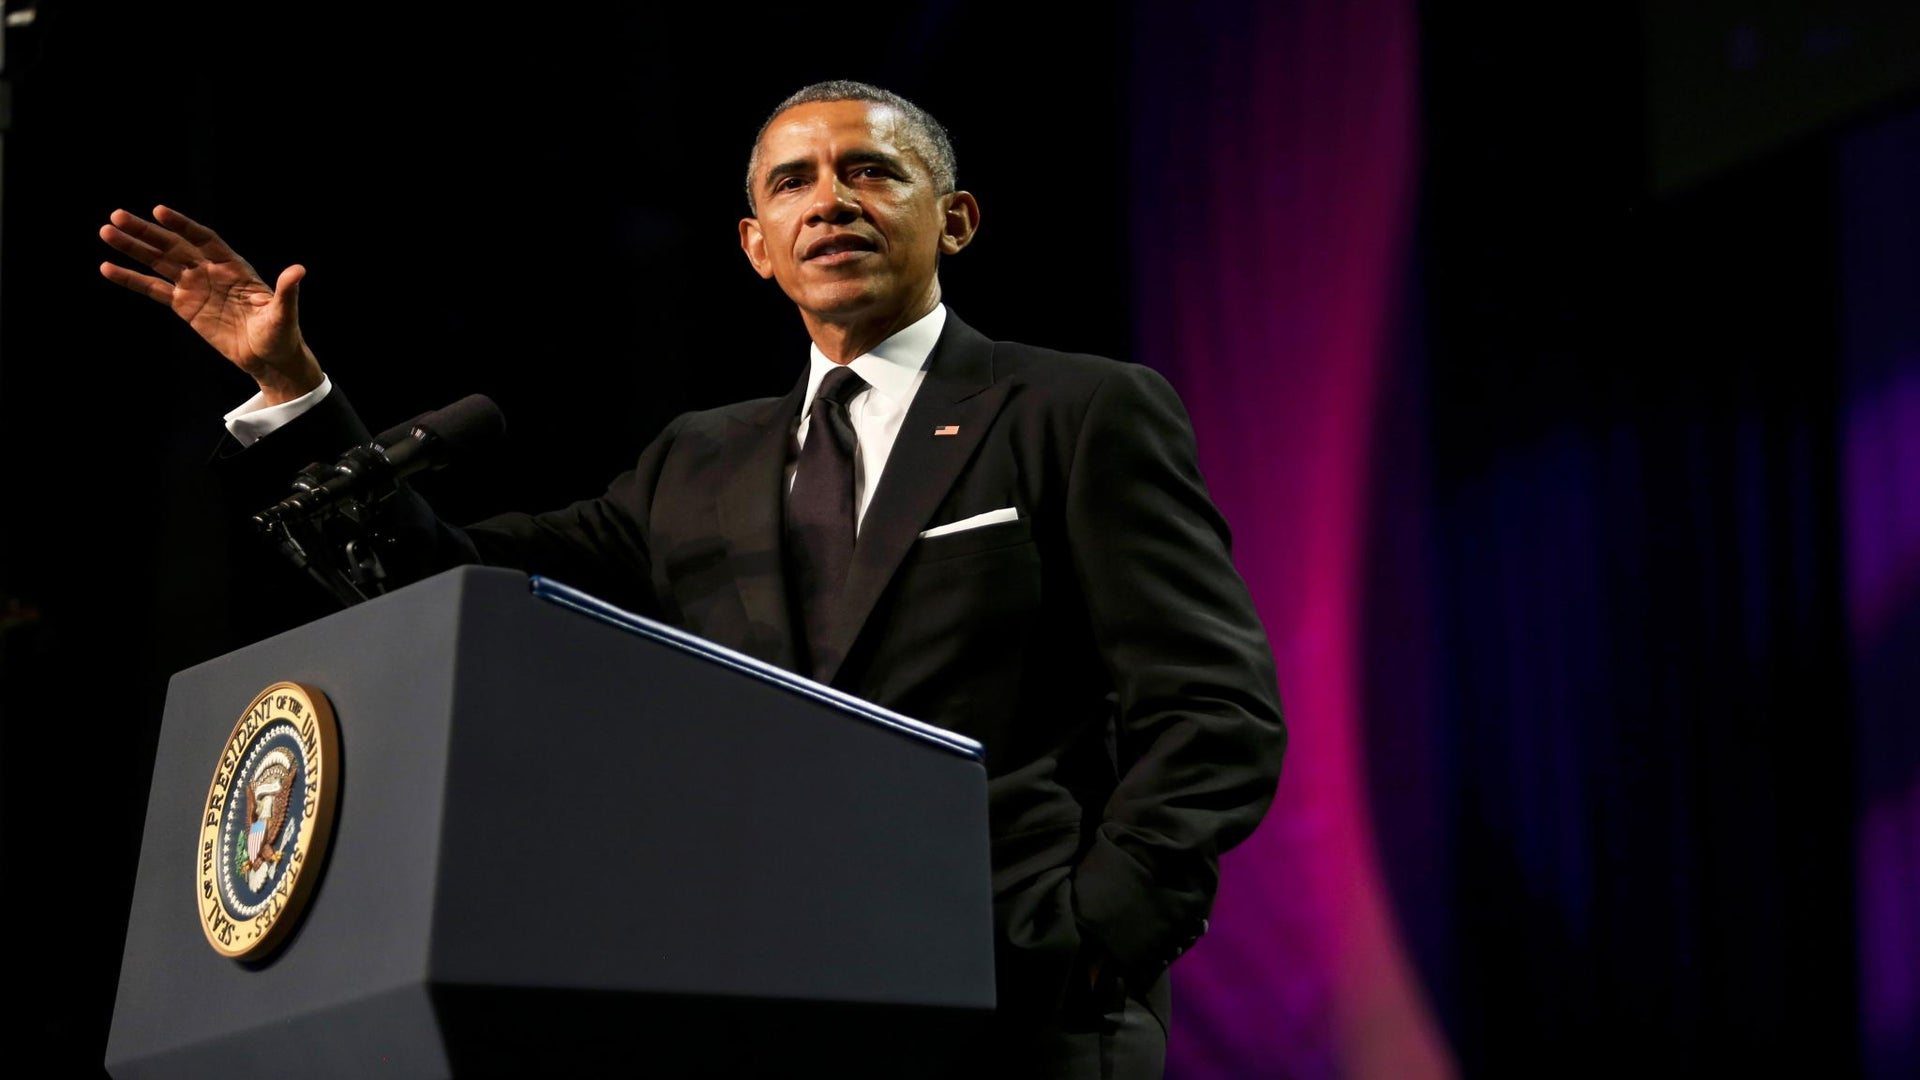 President Obama to Hold Town Hall on Gun Violence